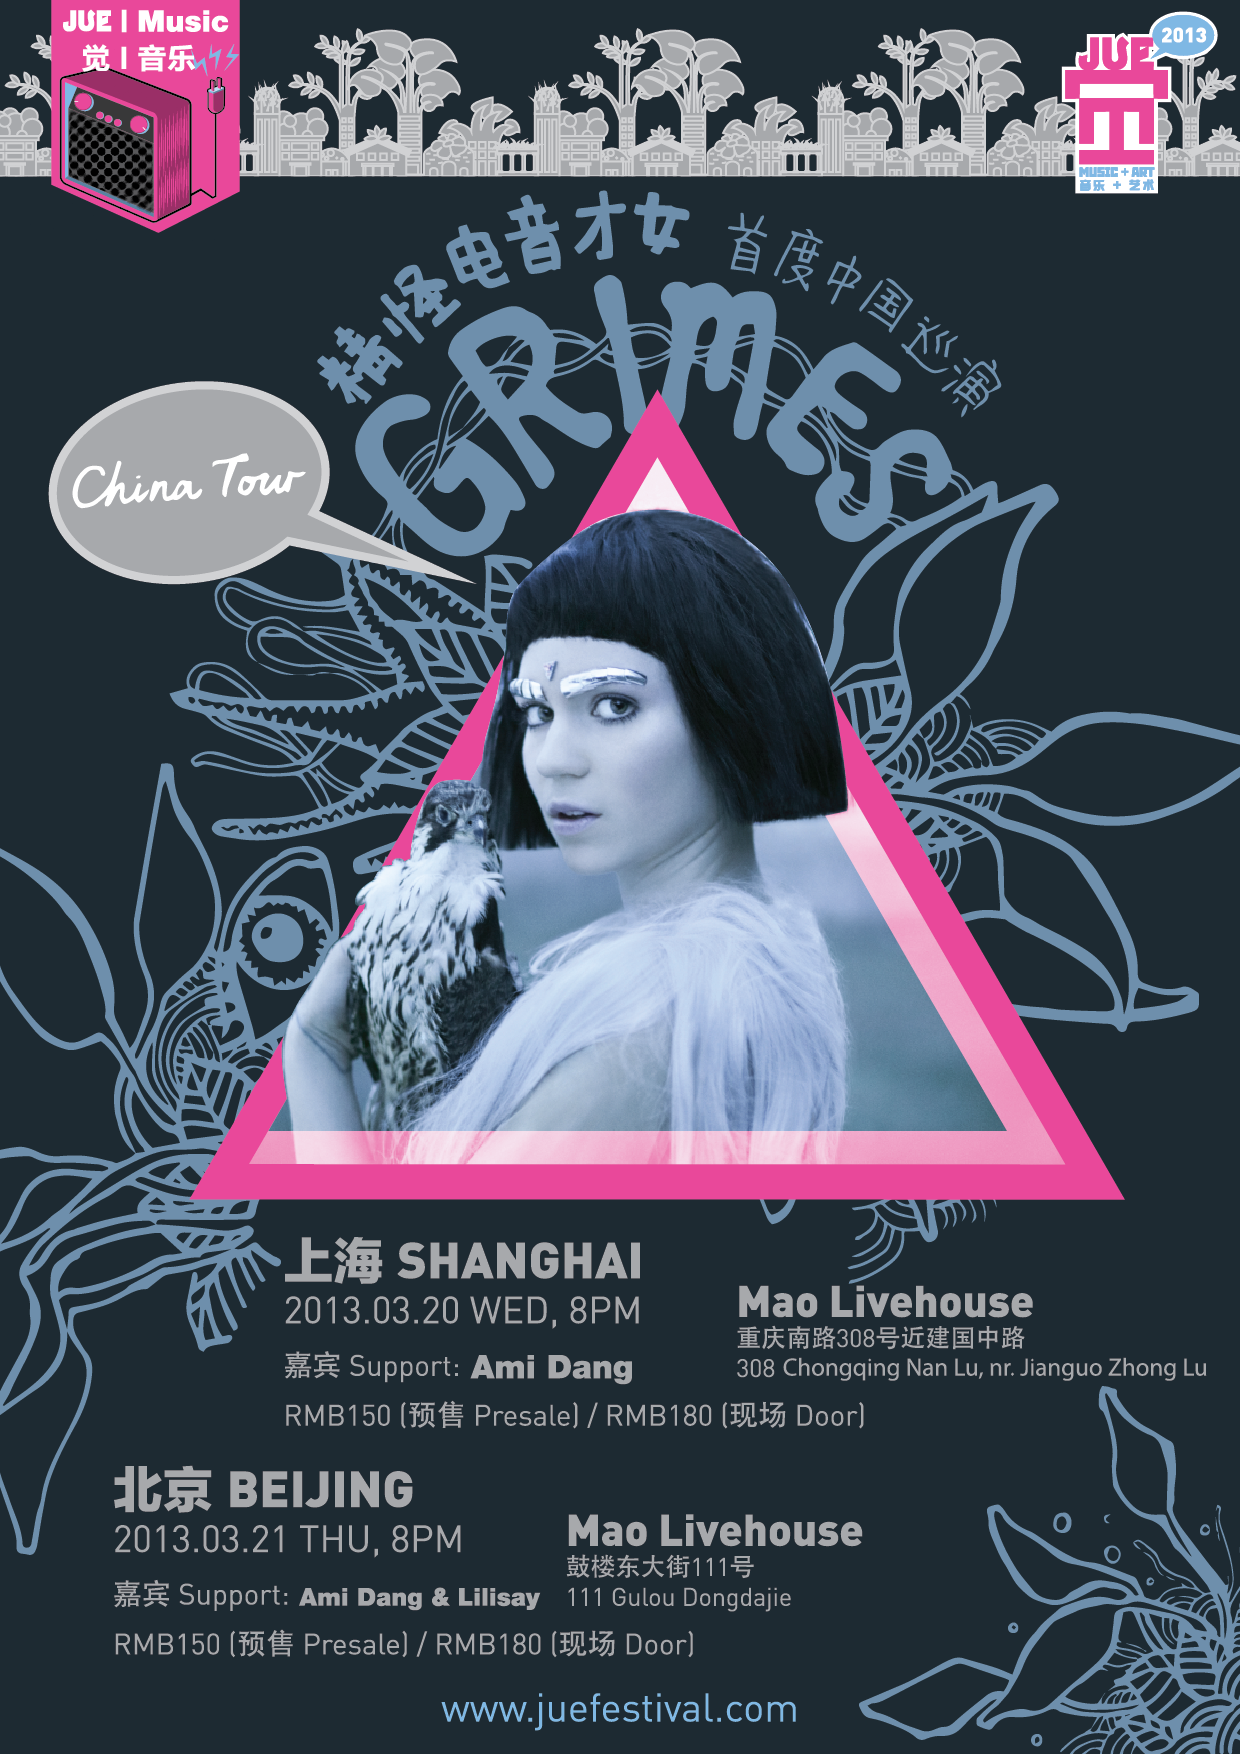 Grimes China Tour Muse of music, Music images, Music